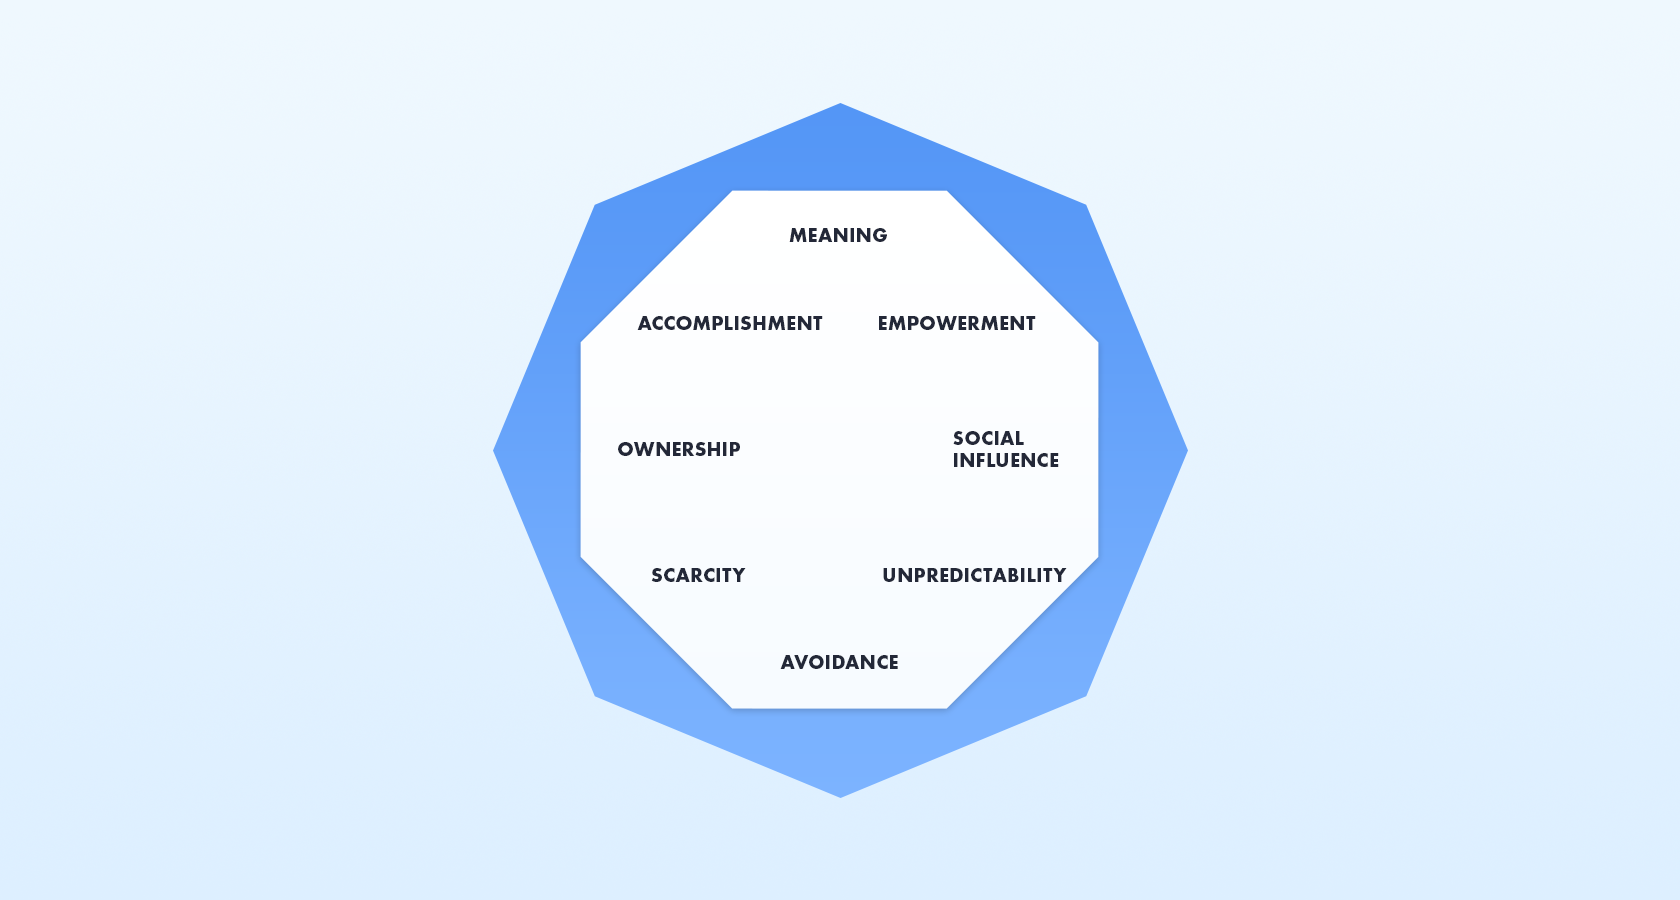 Gamification design: the Octalysis framework